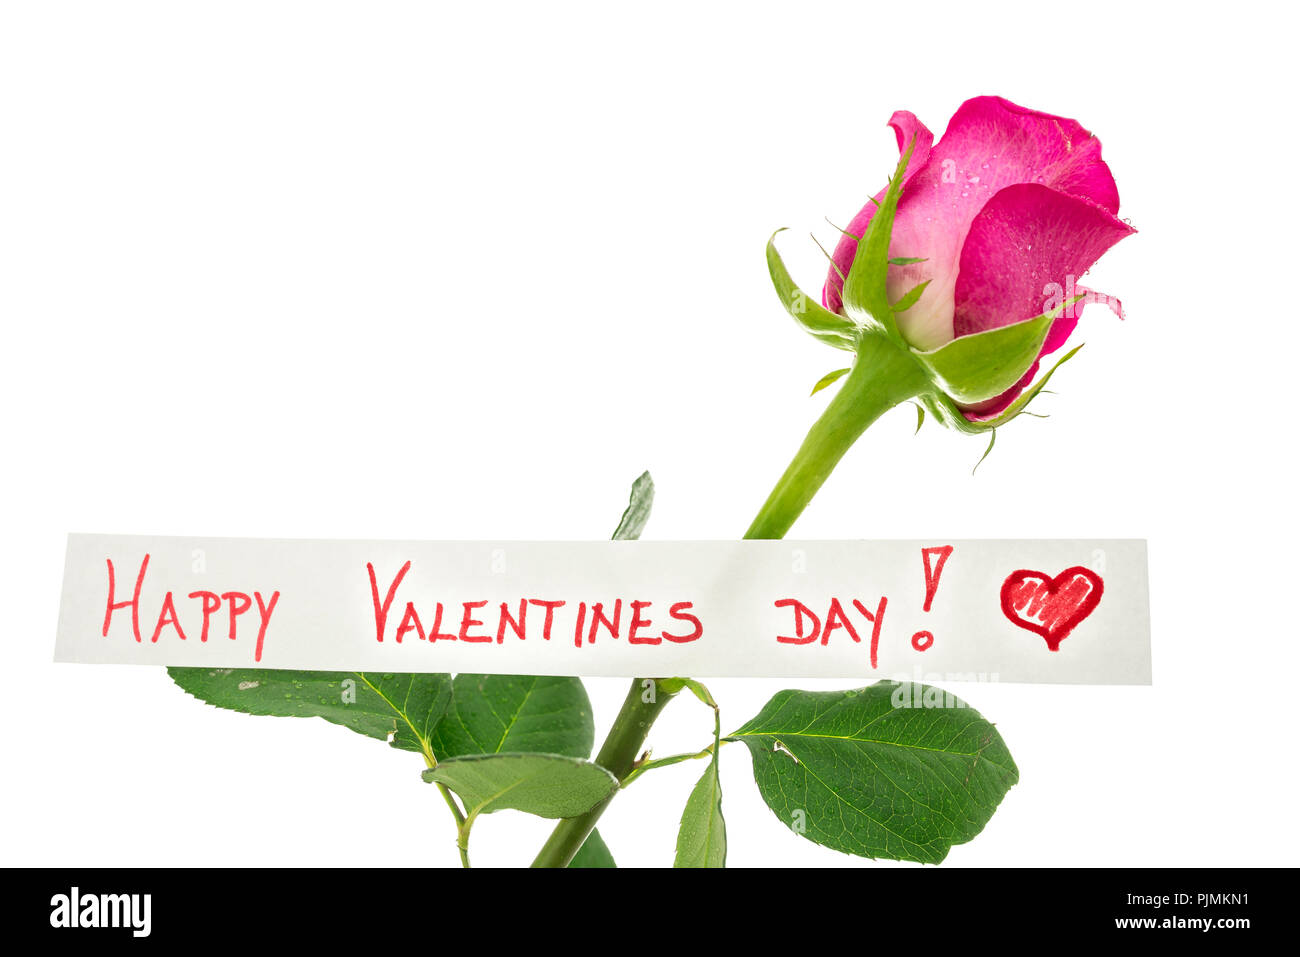 Happy Valentines Day Greeting Card With A Handwritten Message And